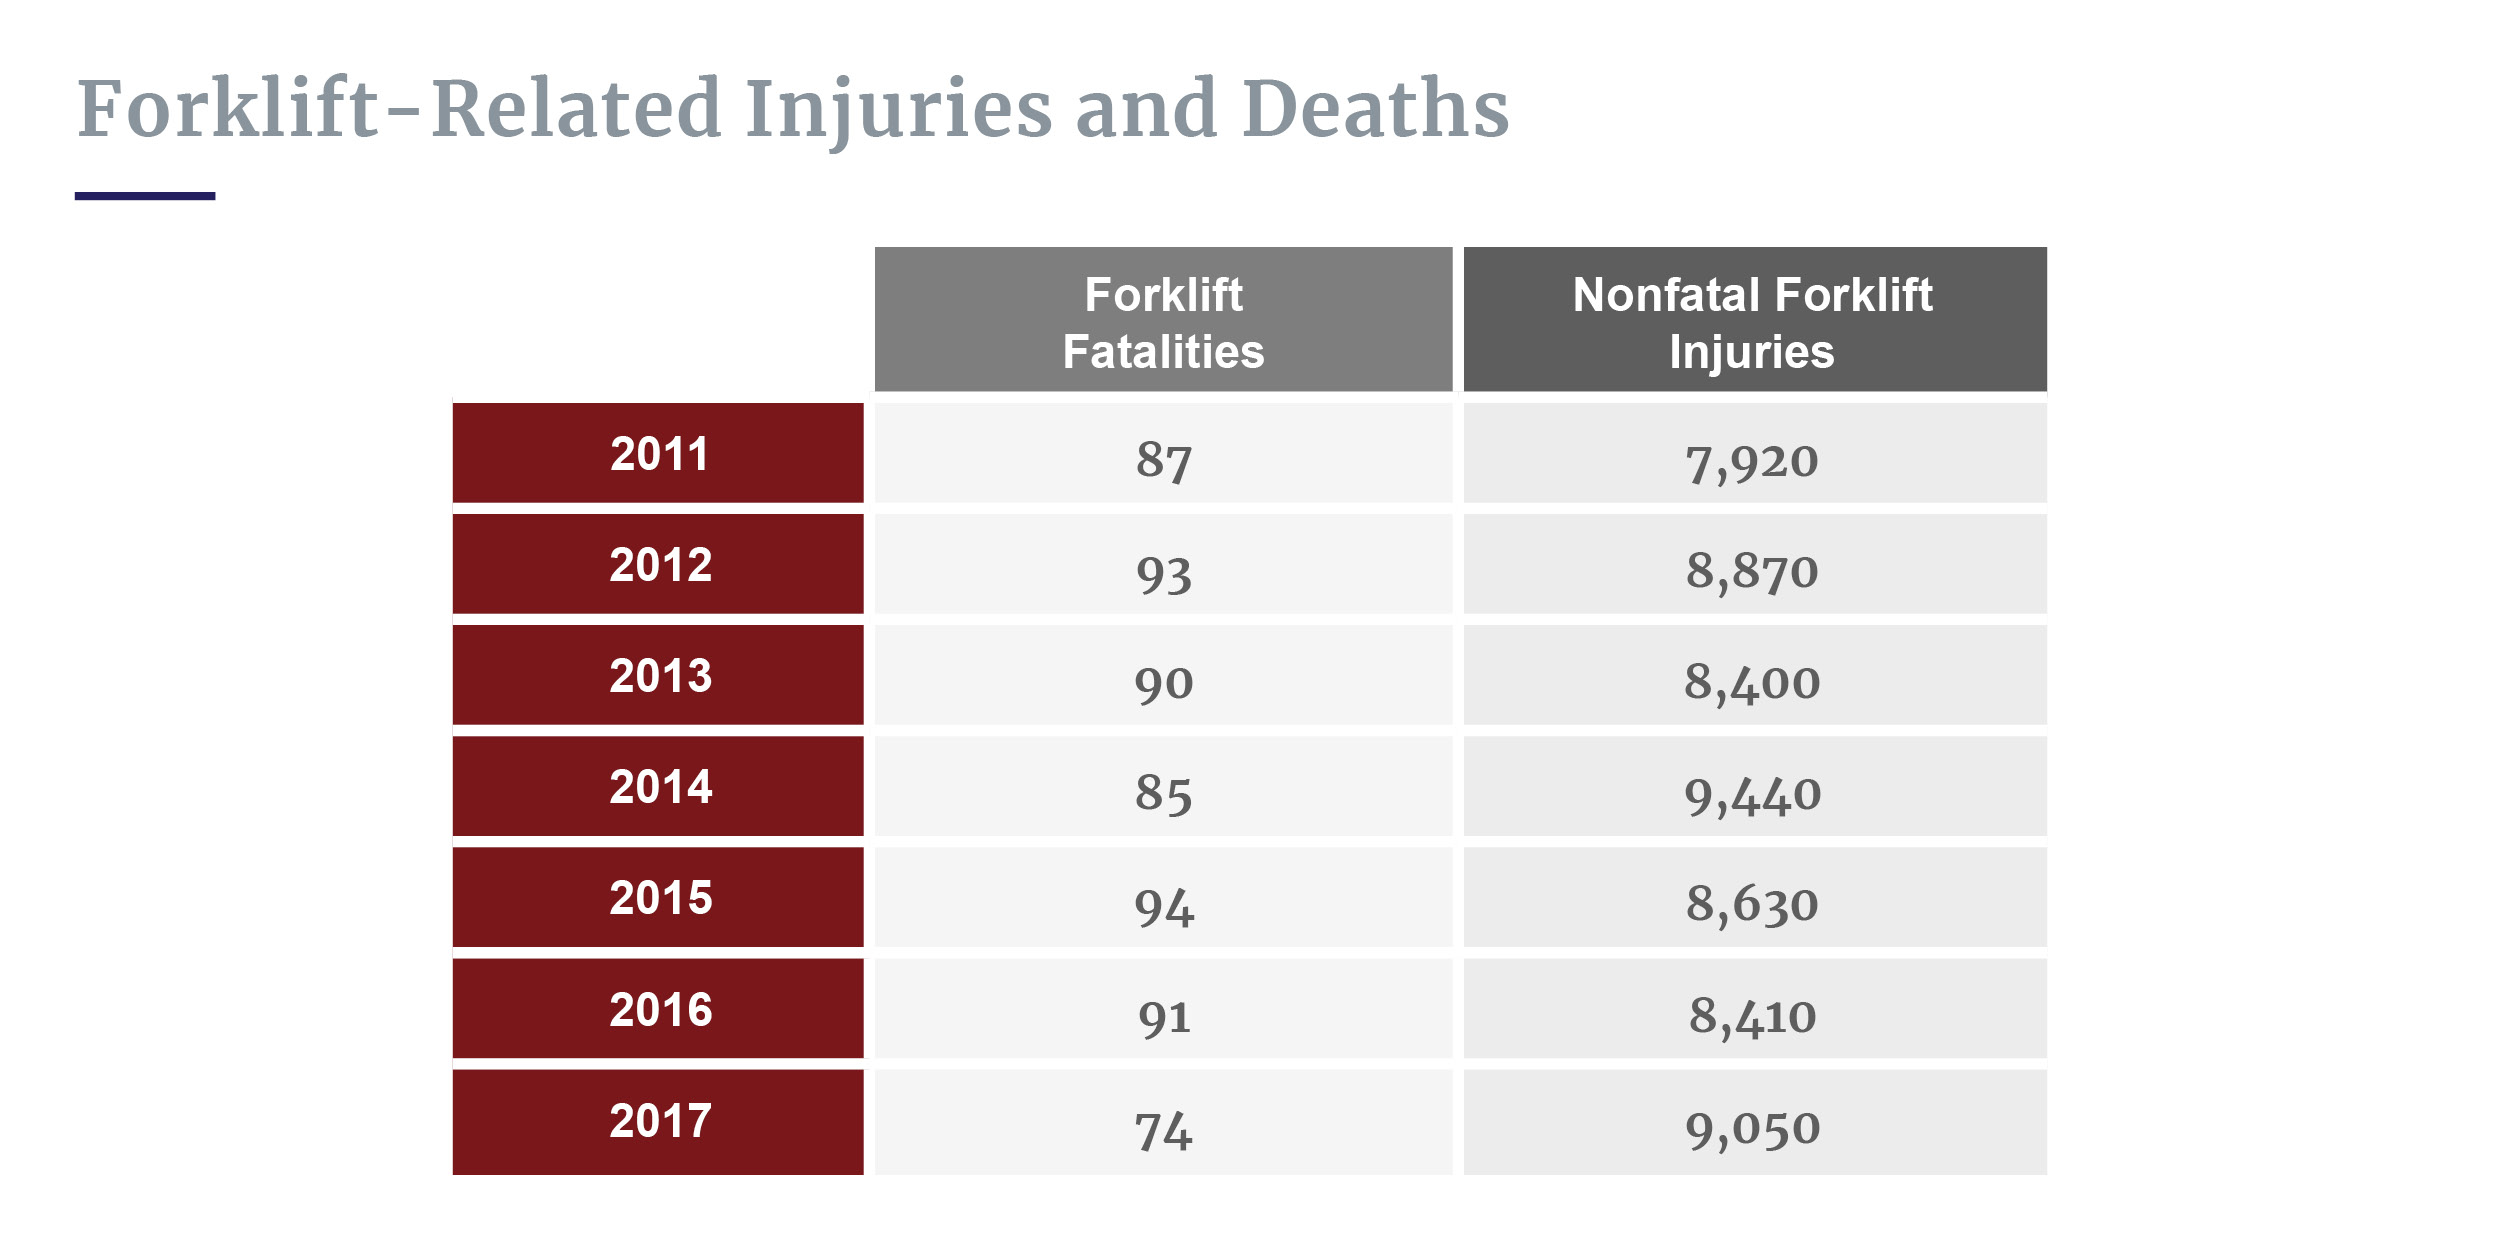 Forklift-related injuries and deaths